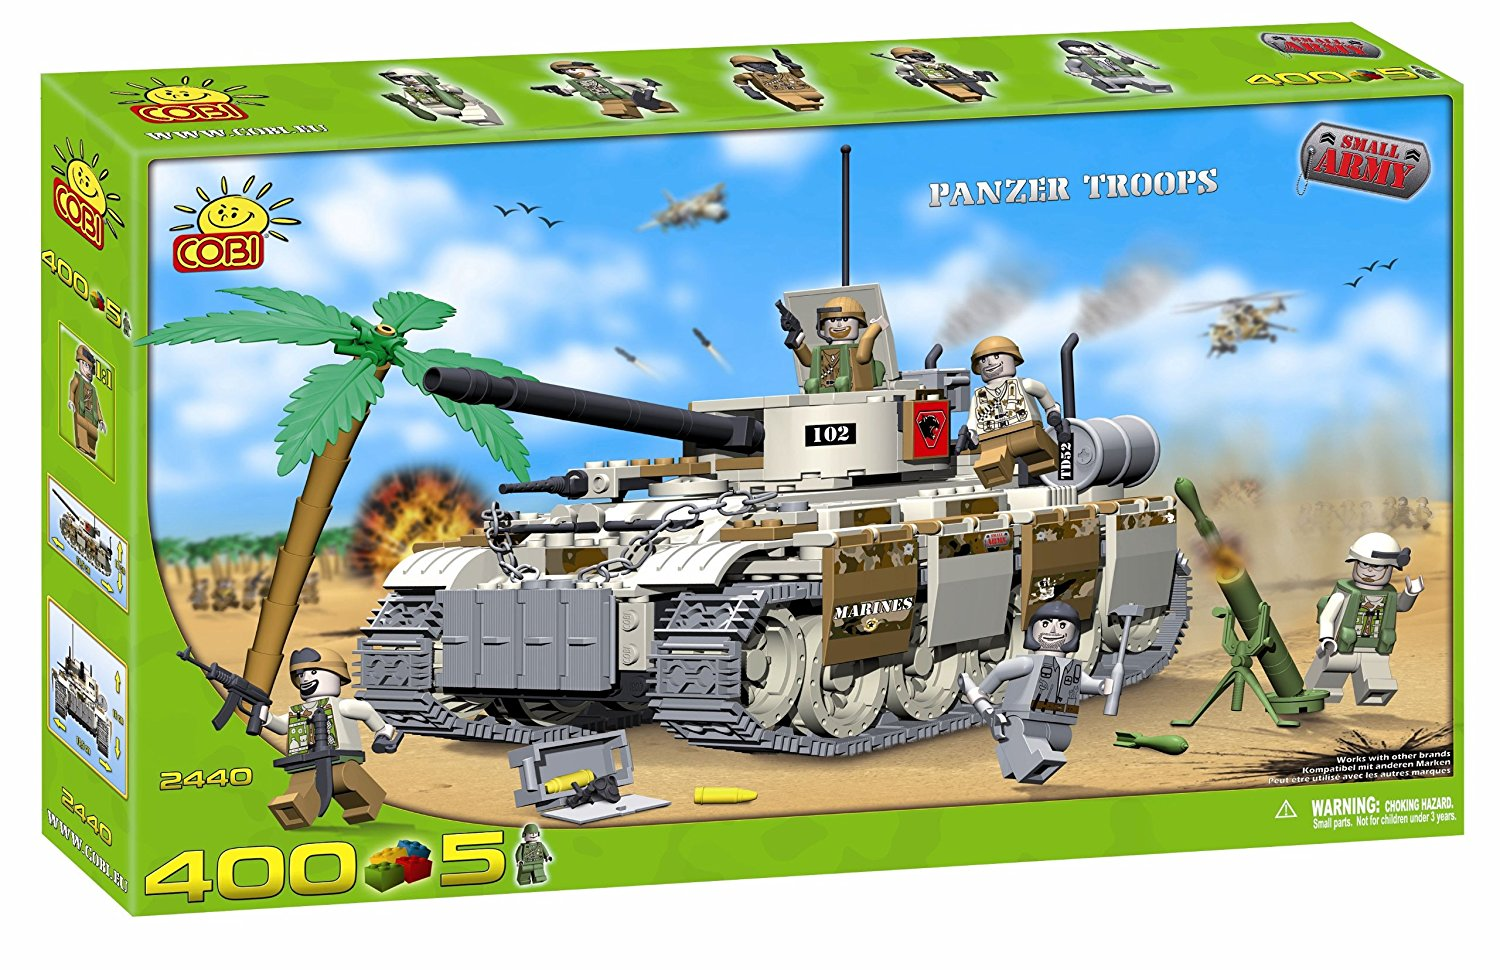 New! COBI Small Army Panzer Tank With Troops 400 Piece Building Block Set by